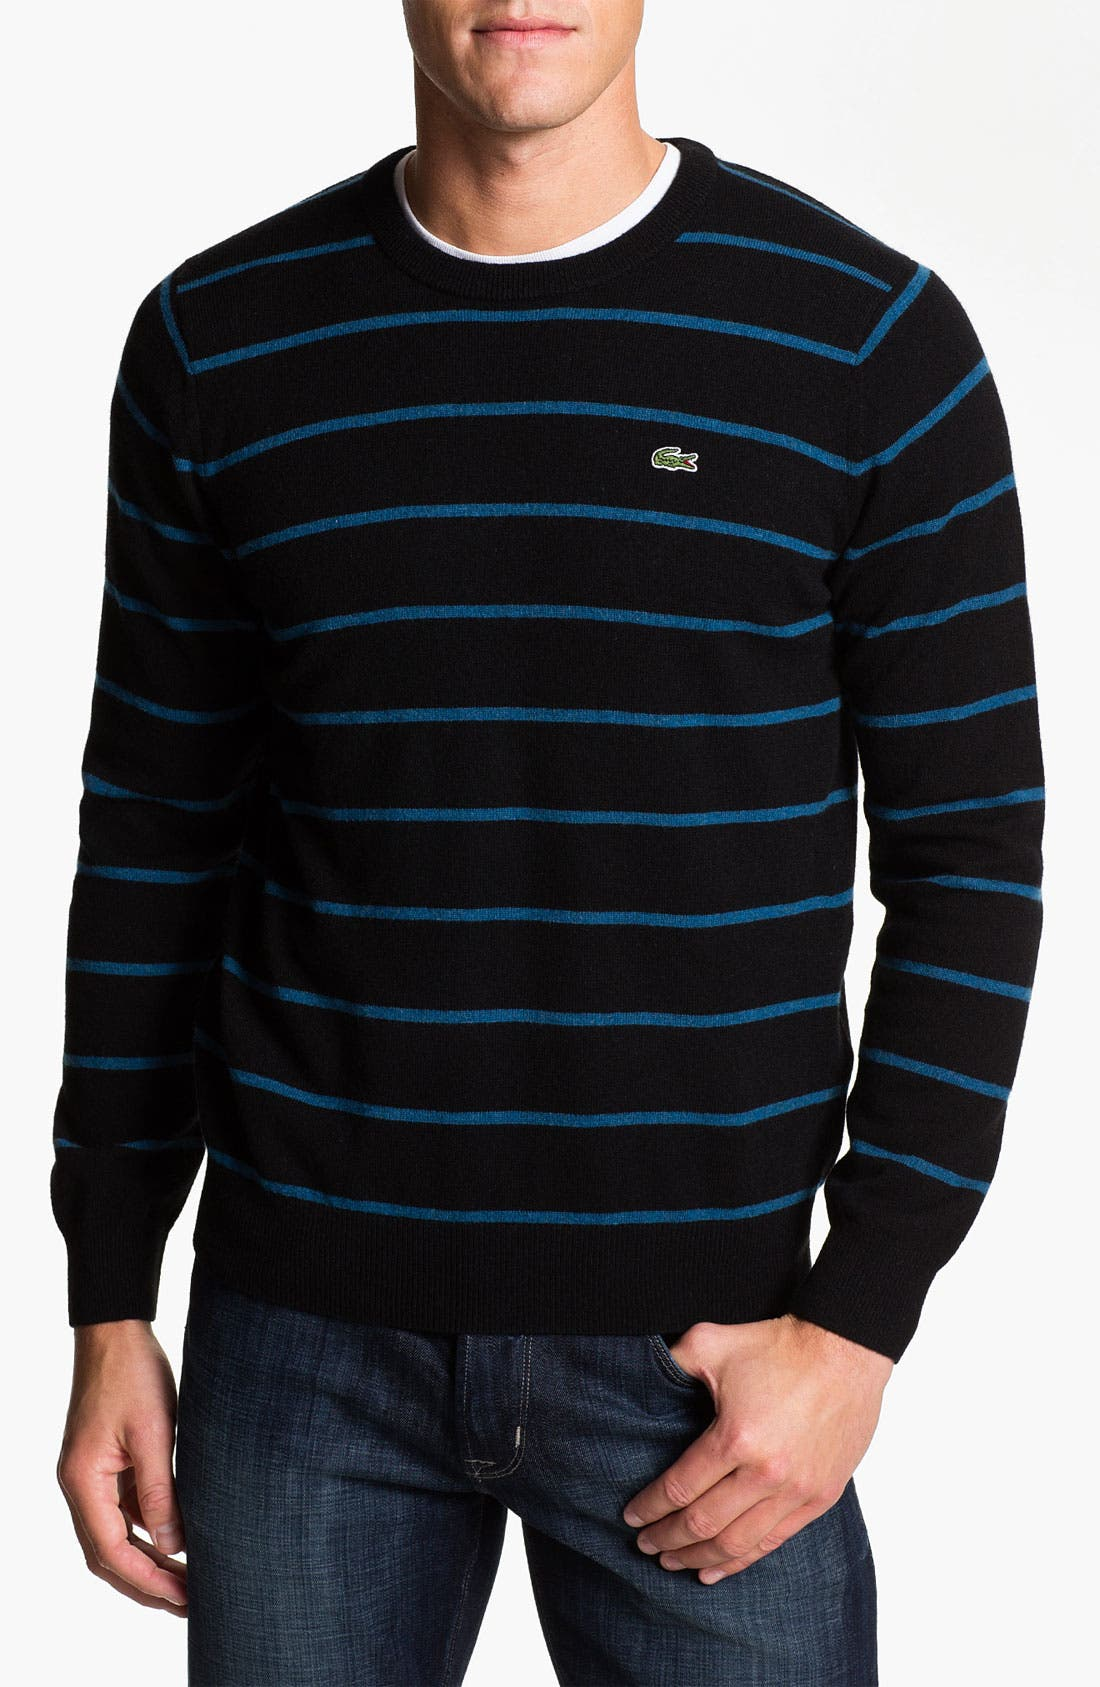 Main Image - Lacoste Stripe Wool Crewneck Sweater